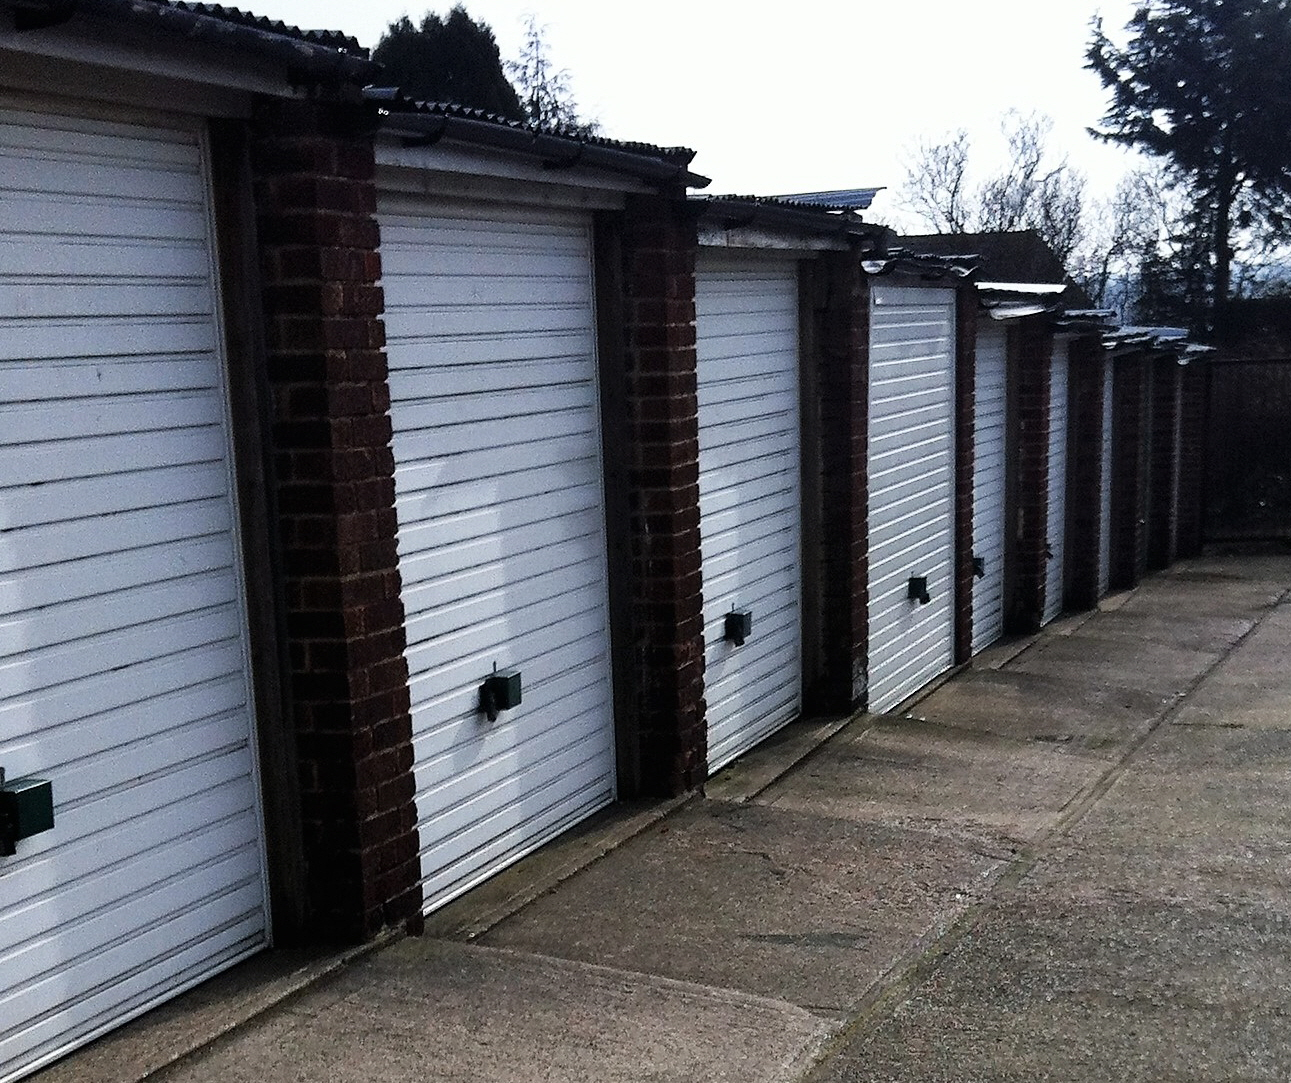 gated secure lock up garage storage units rent rental garages monthly rental quarterly  cost to let landlord hire cheap car vehicle bike parking bay space off road parking medway gated entrance